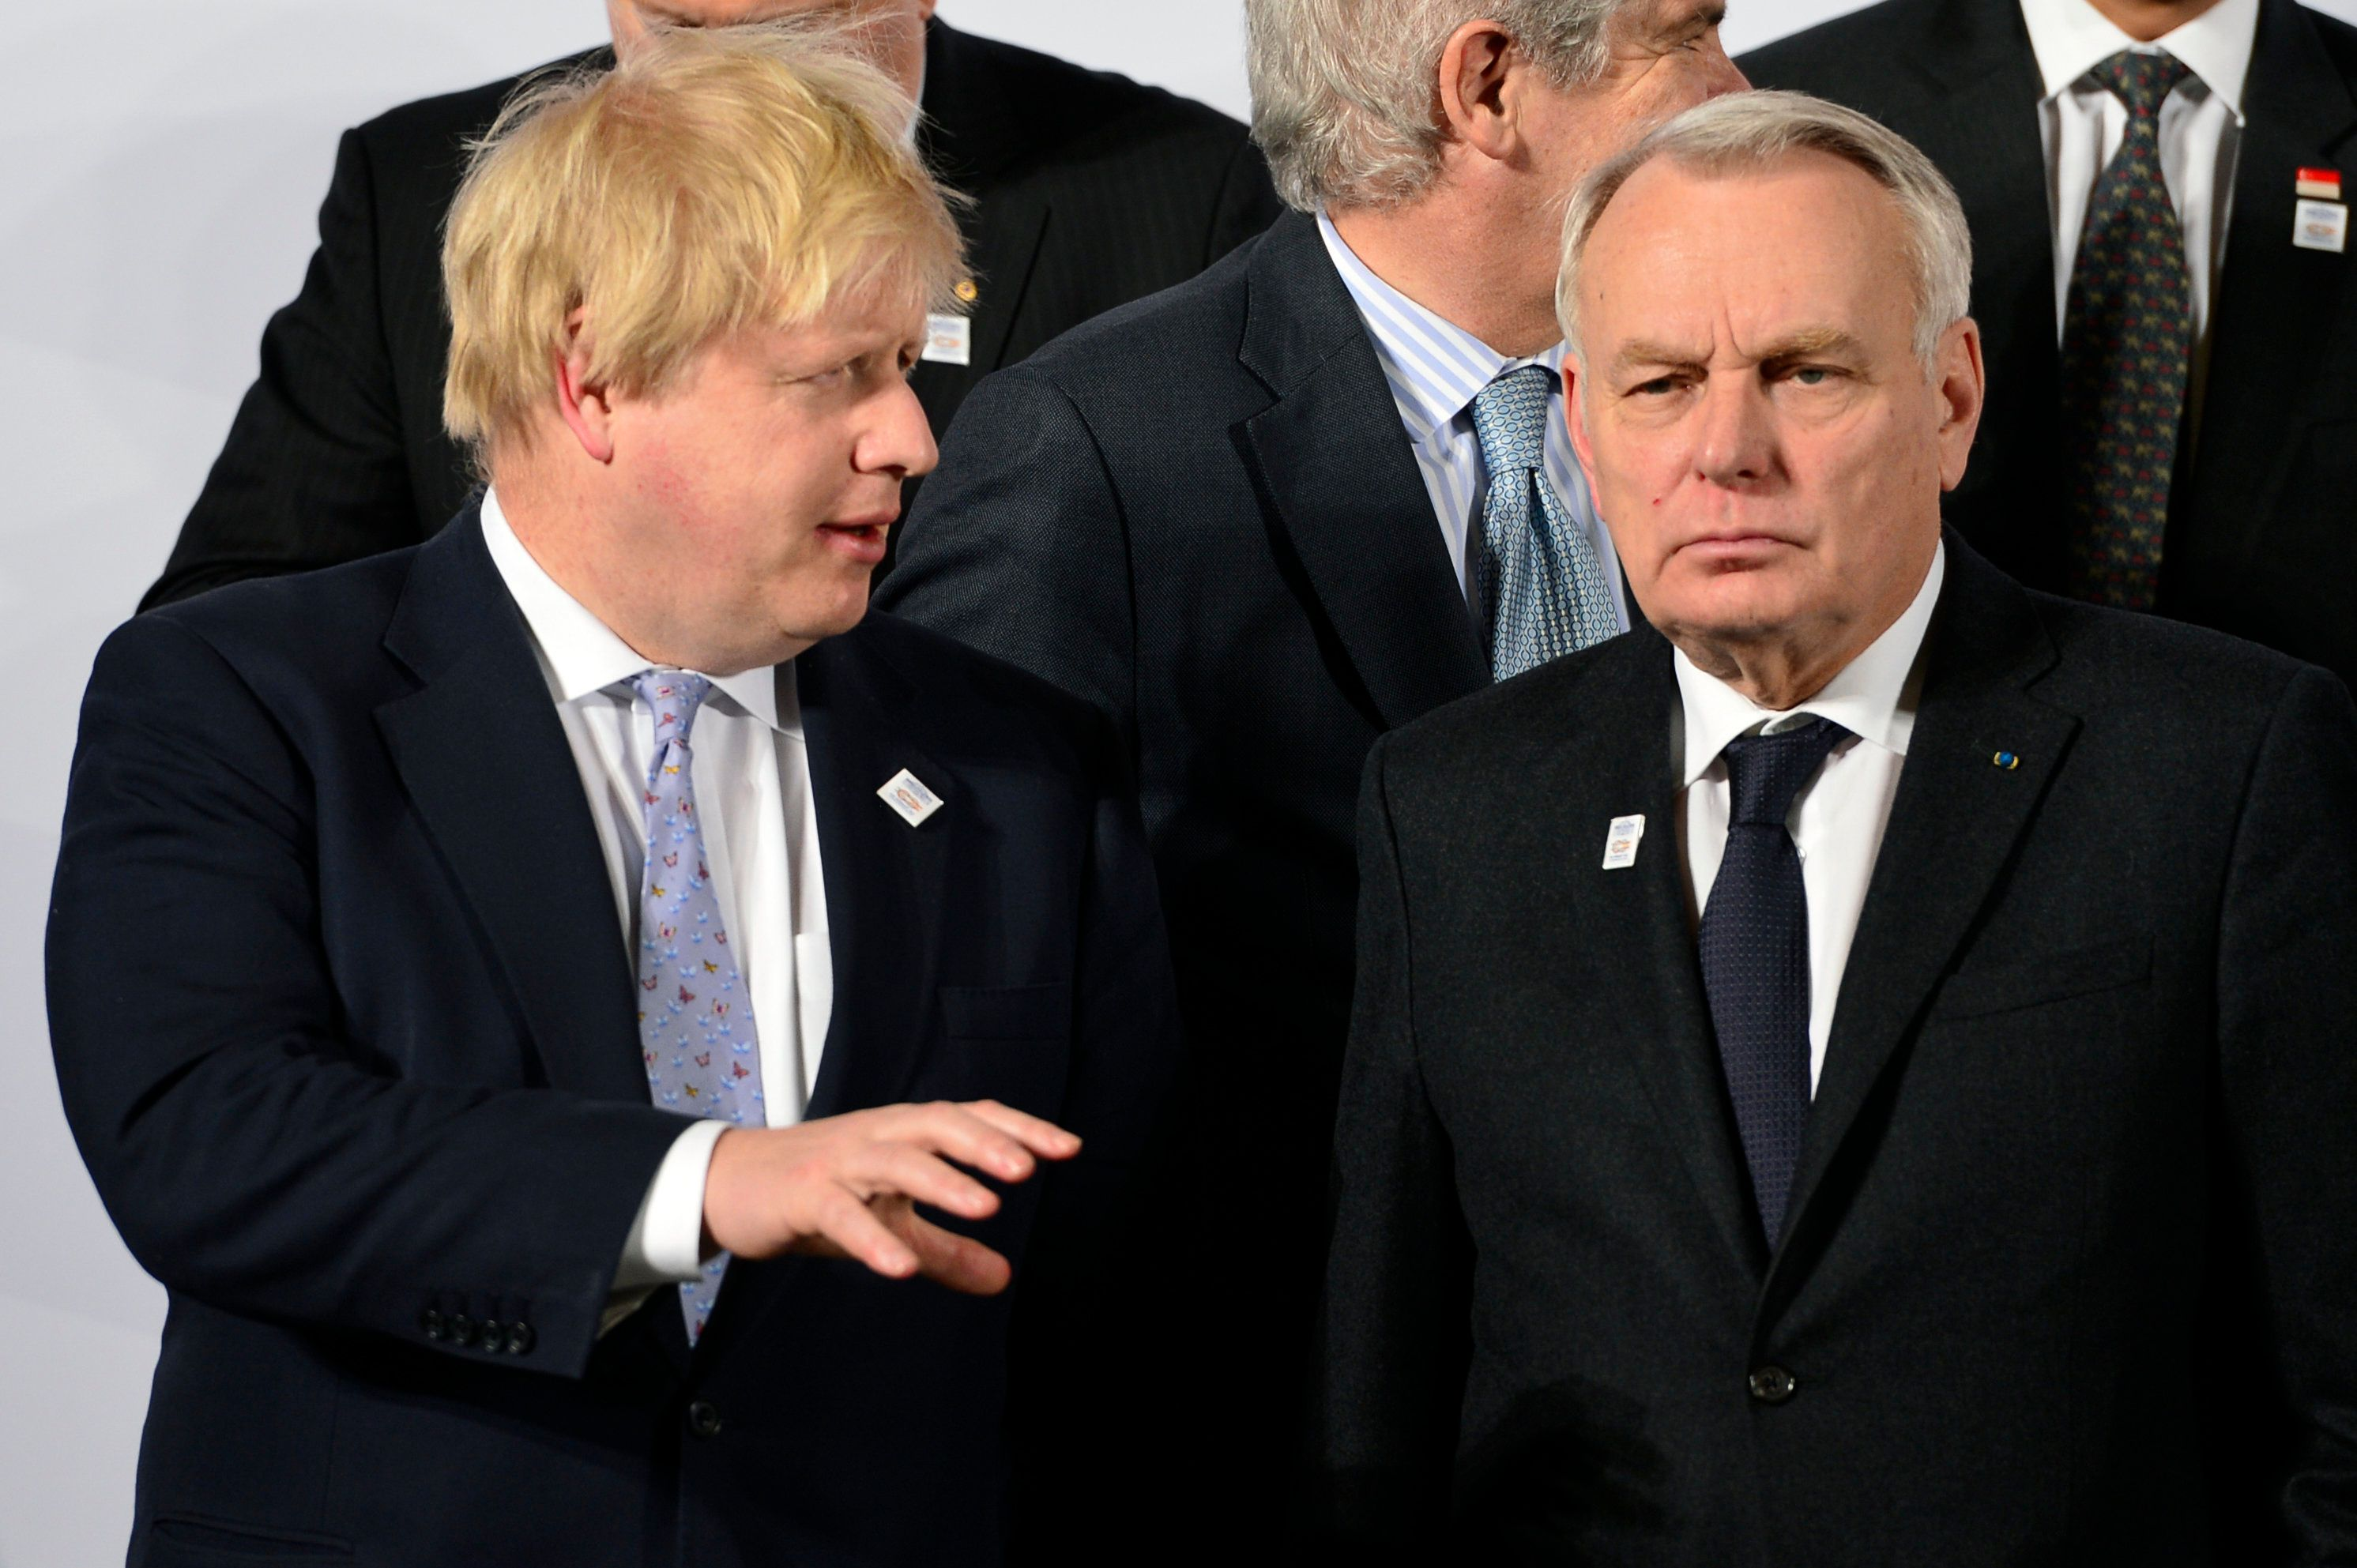 Boris Urges Those Behind Syrian Chemical Attack To Be Held To